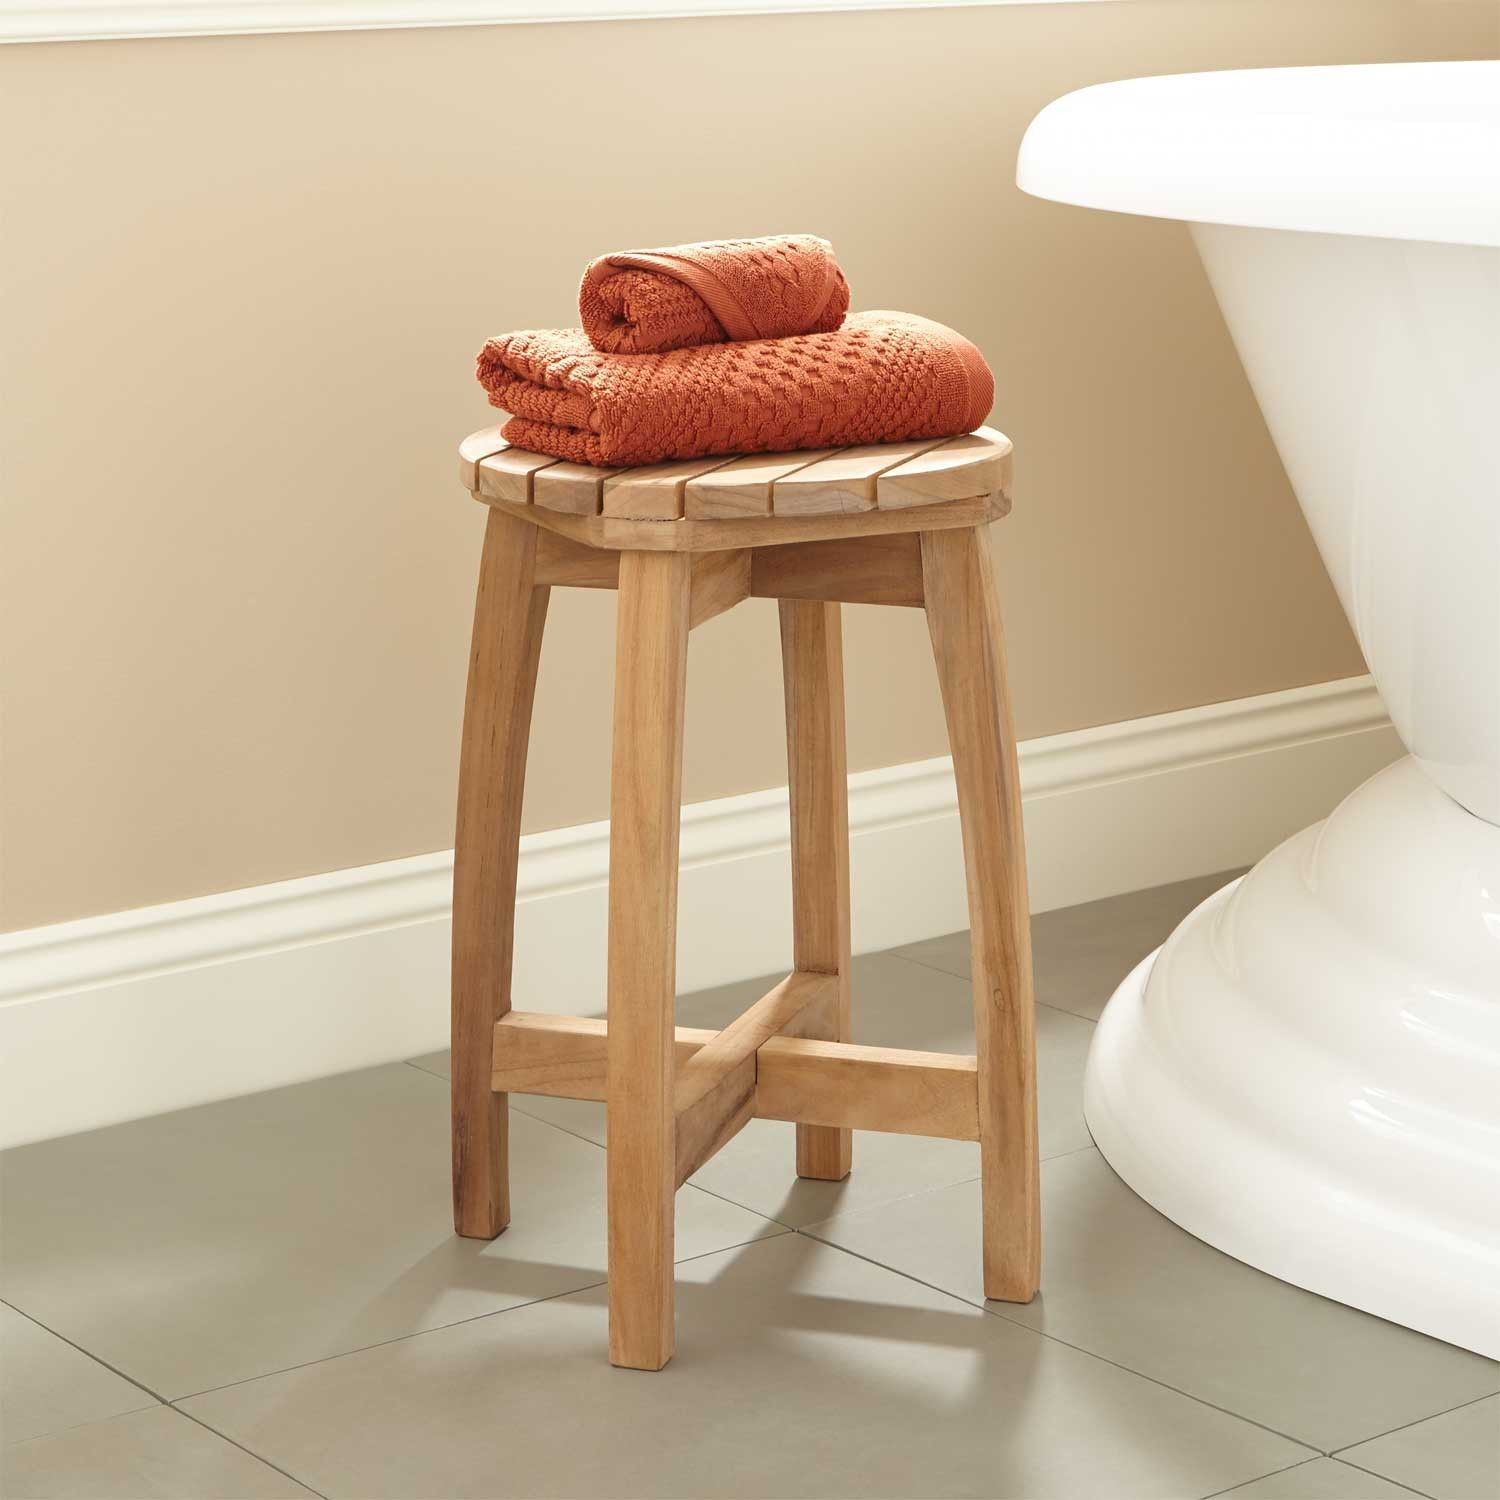 Terrel Round Teak Shower Stool | Teak shower stool, Teak and Stools